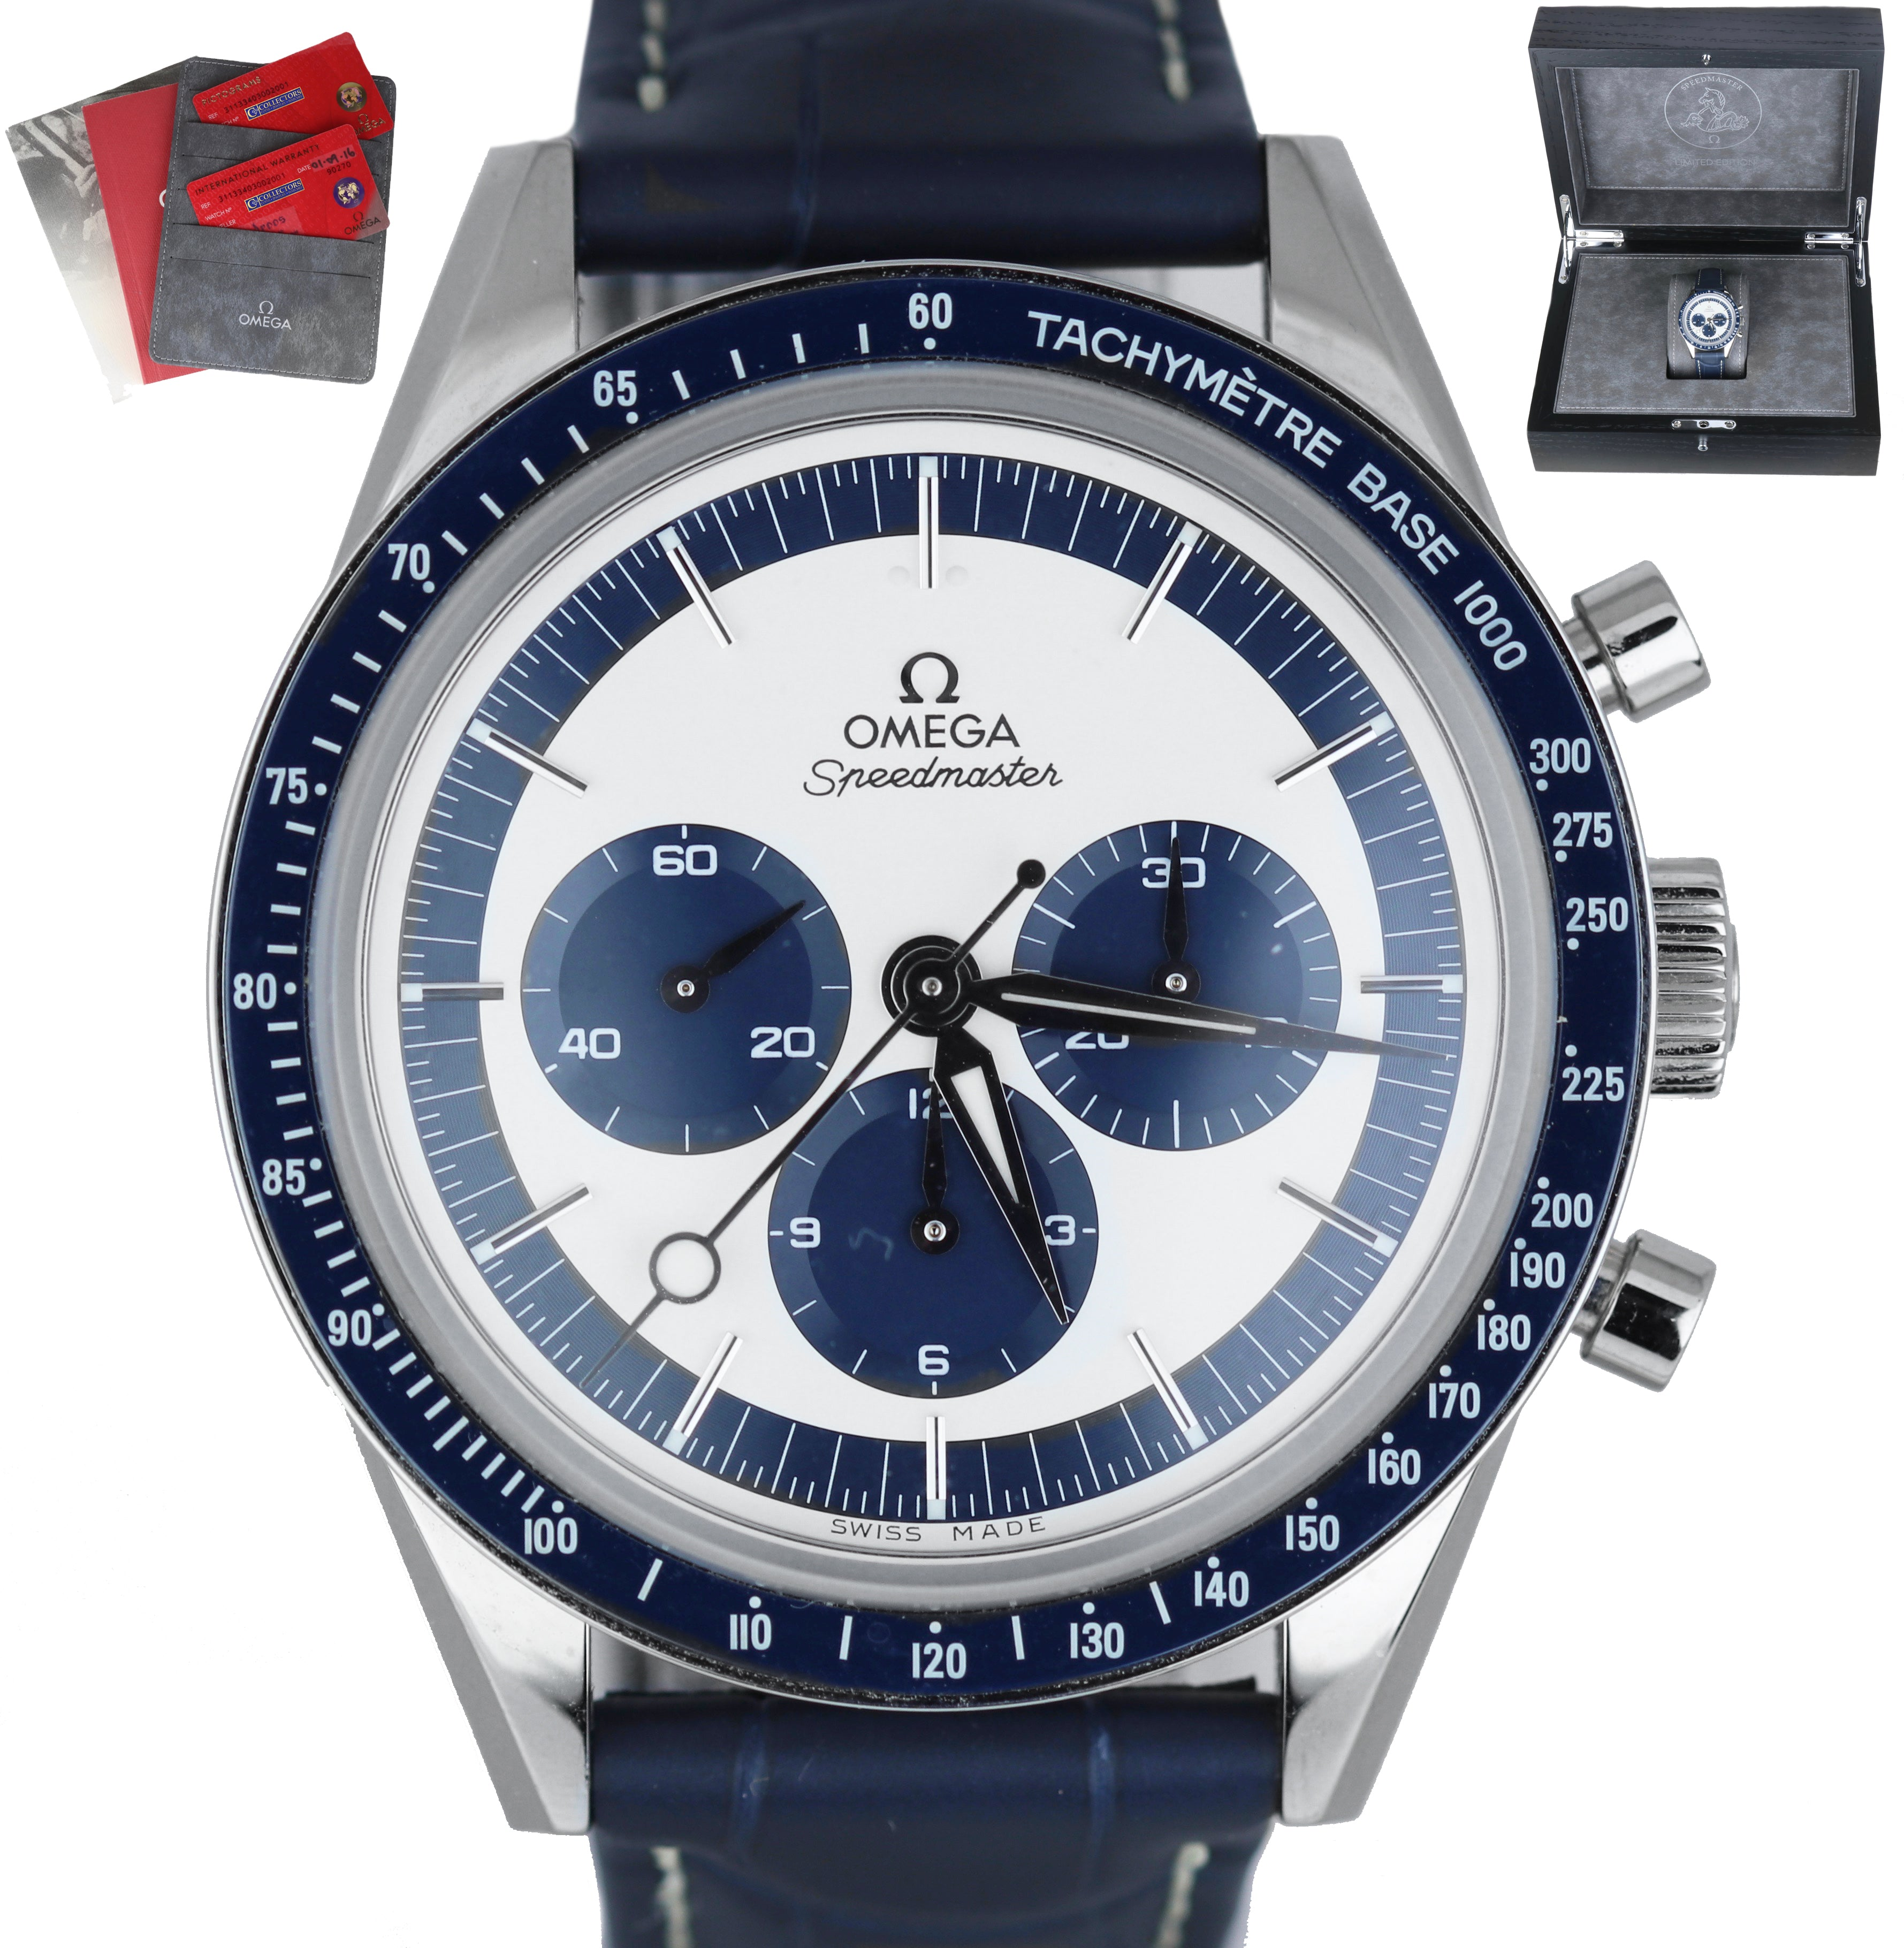 MINT Omega Speedmaster CK2998 Moonwatch 311.33.40.30.02.001 Blue Silver Limited